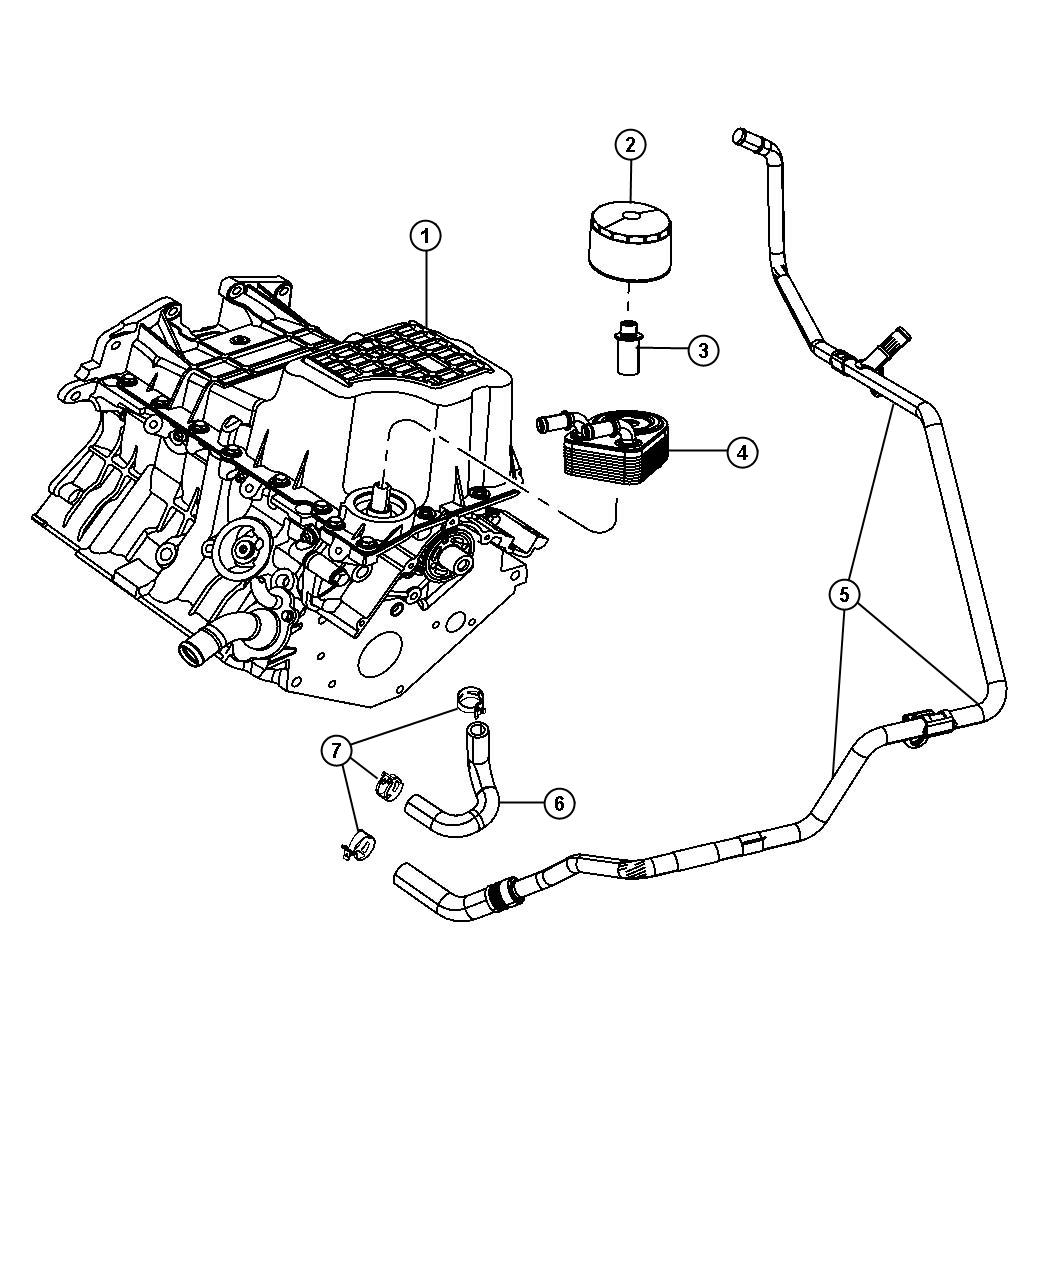 chrysler concorde engine diagram  chrysler  free engine image for user manual download